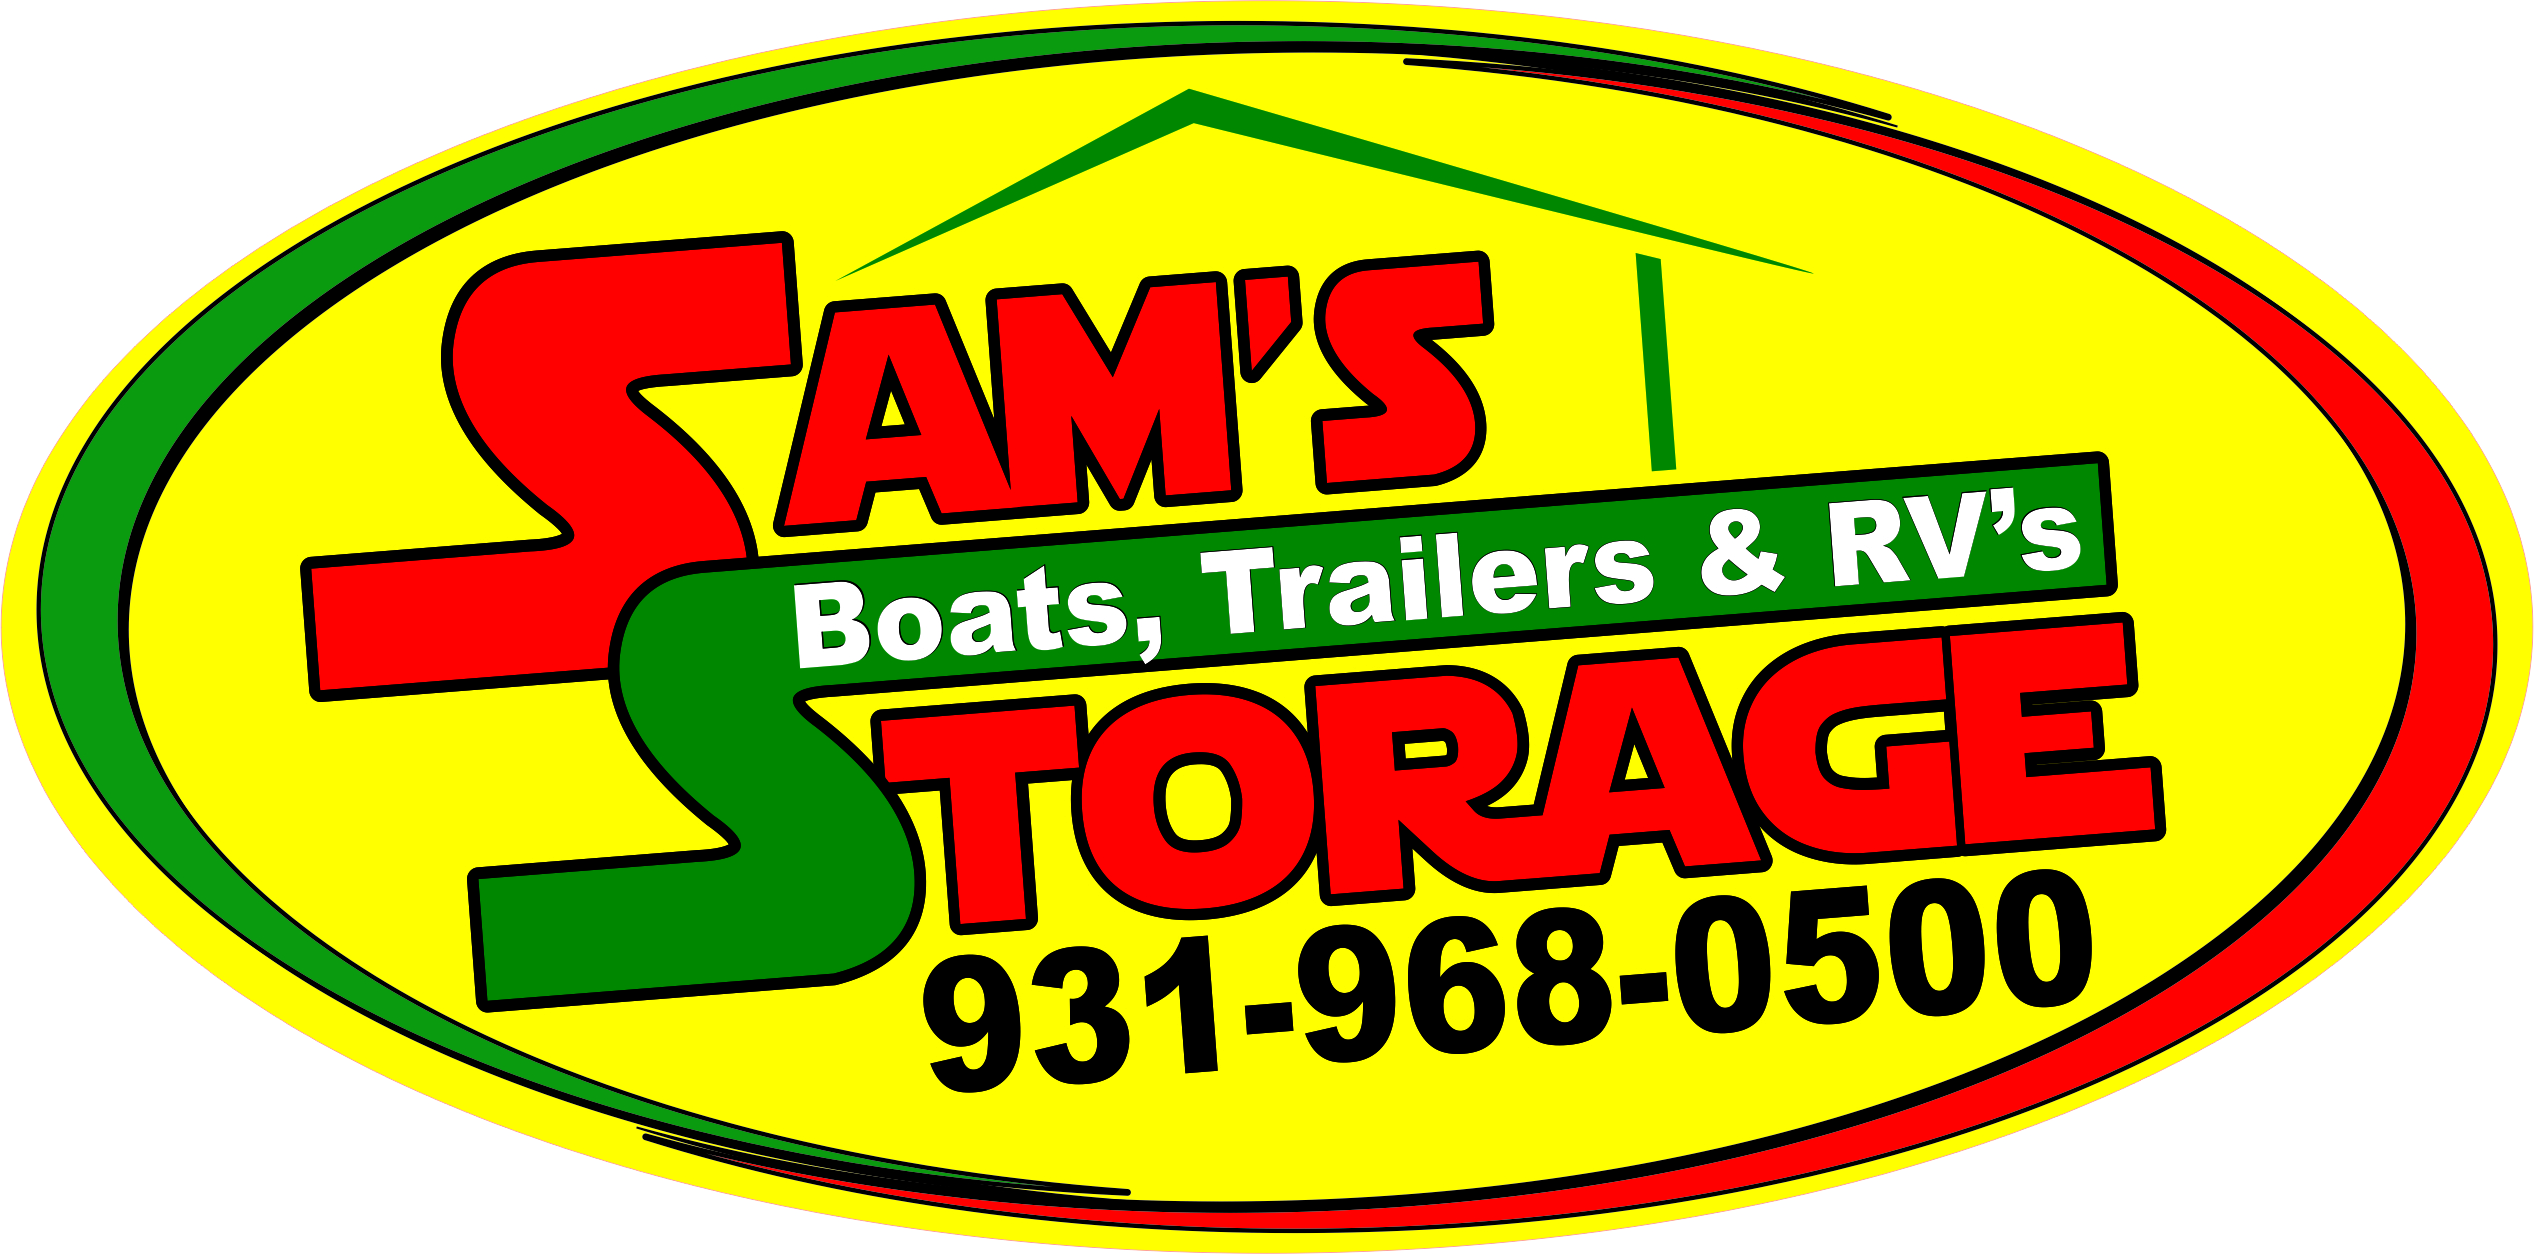 Tims Ford Lake Boat and RV Storage